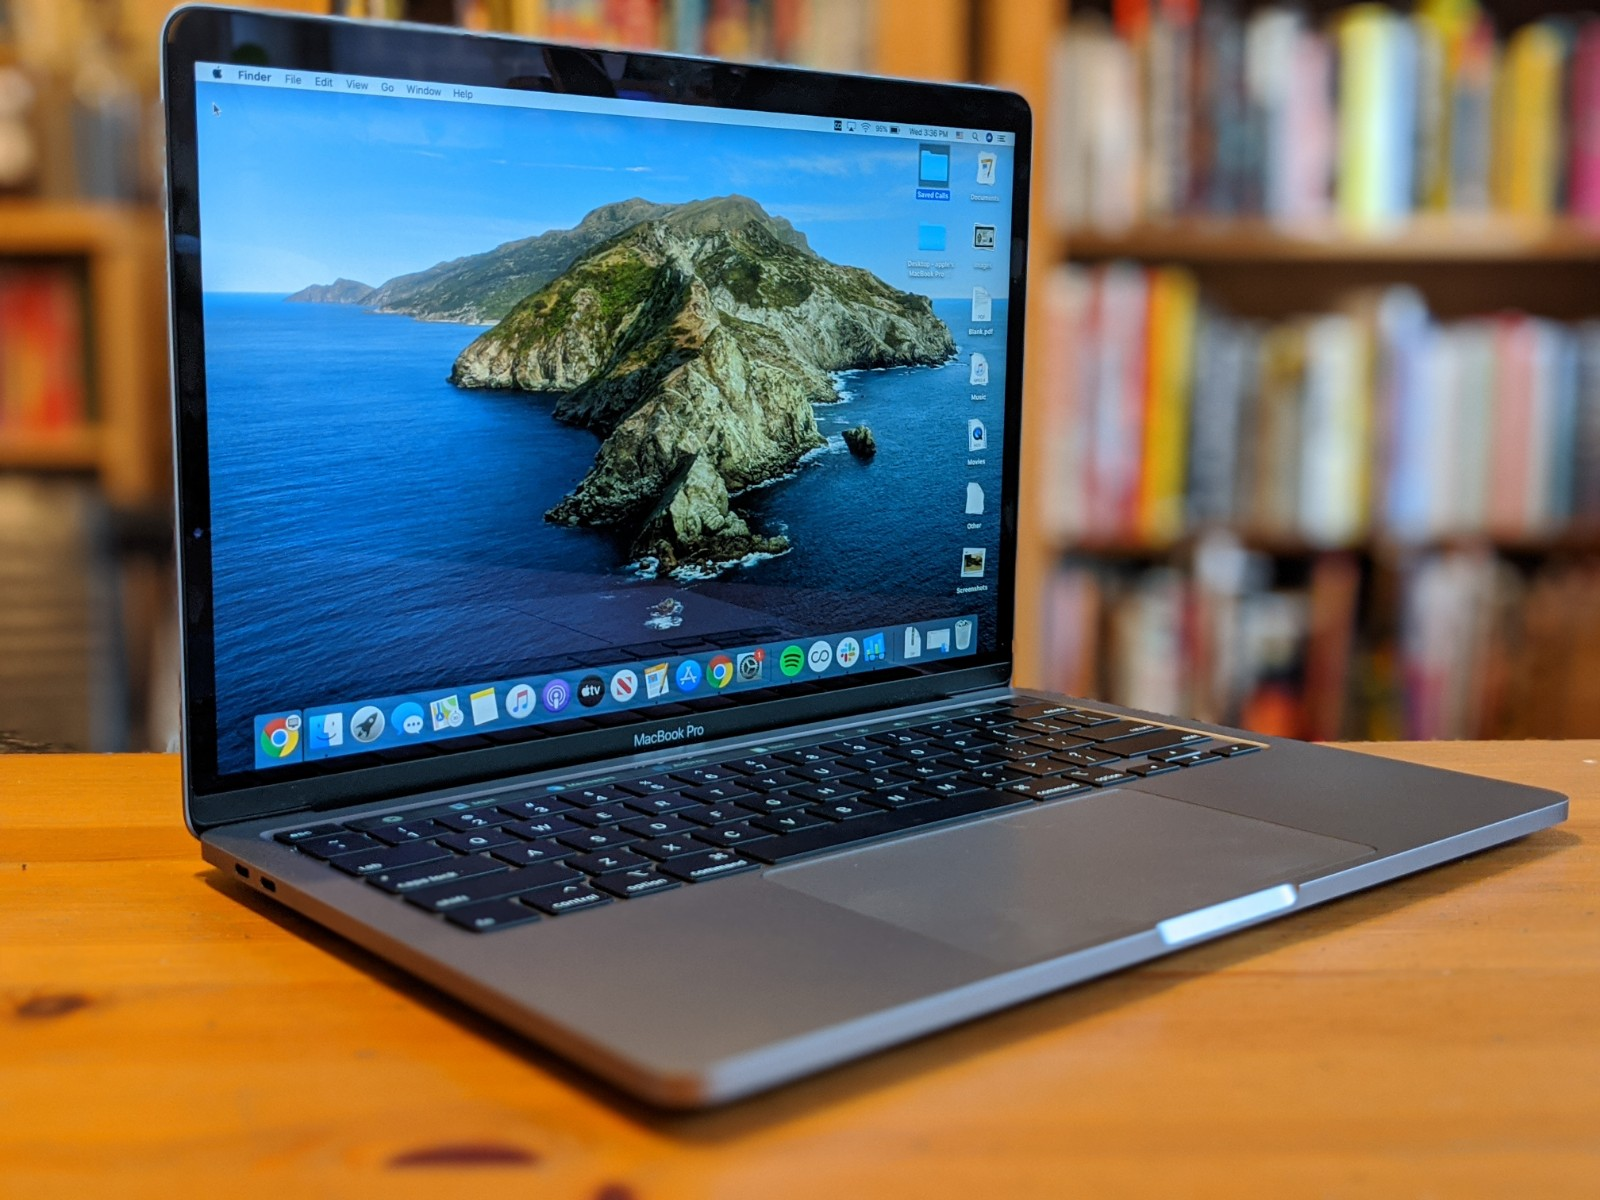 Apple MacBook Pro 13-inch review | TechCrunch